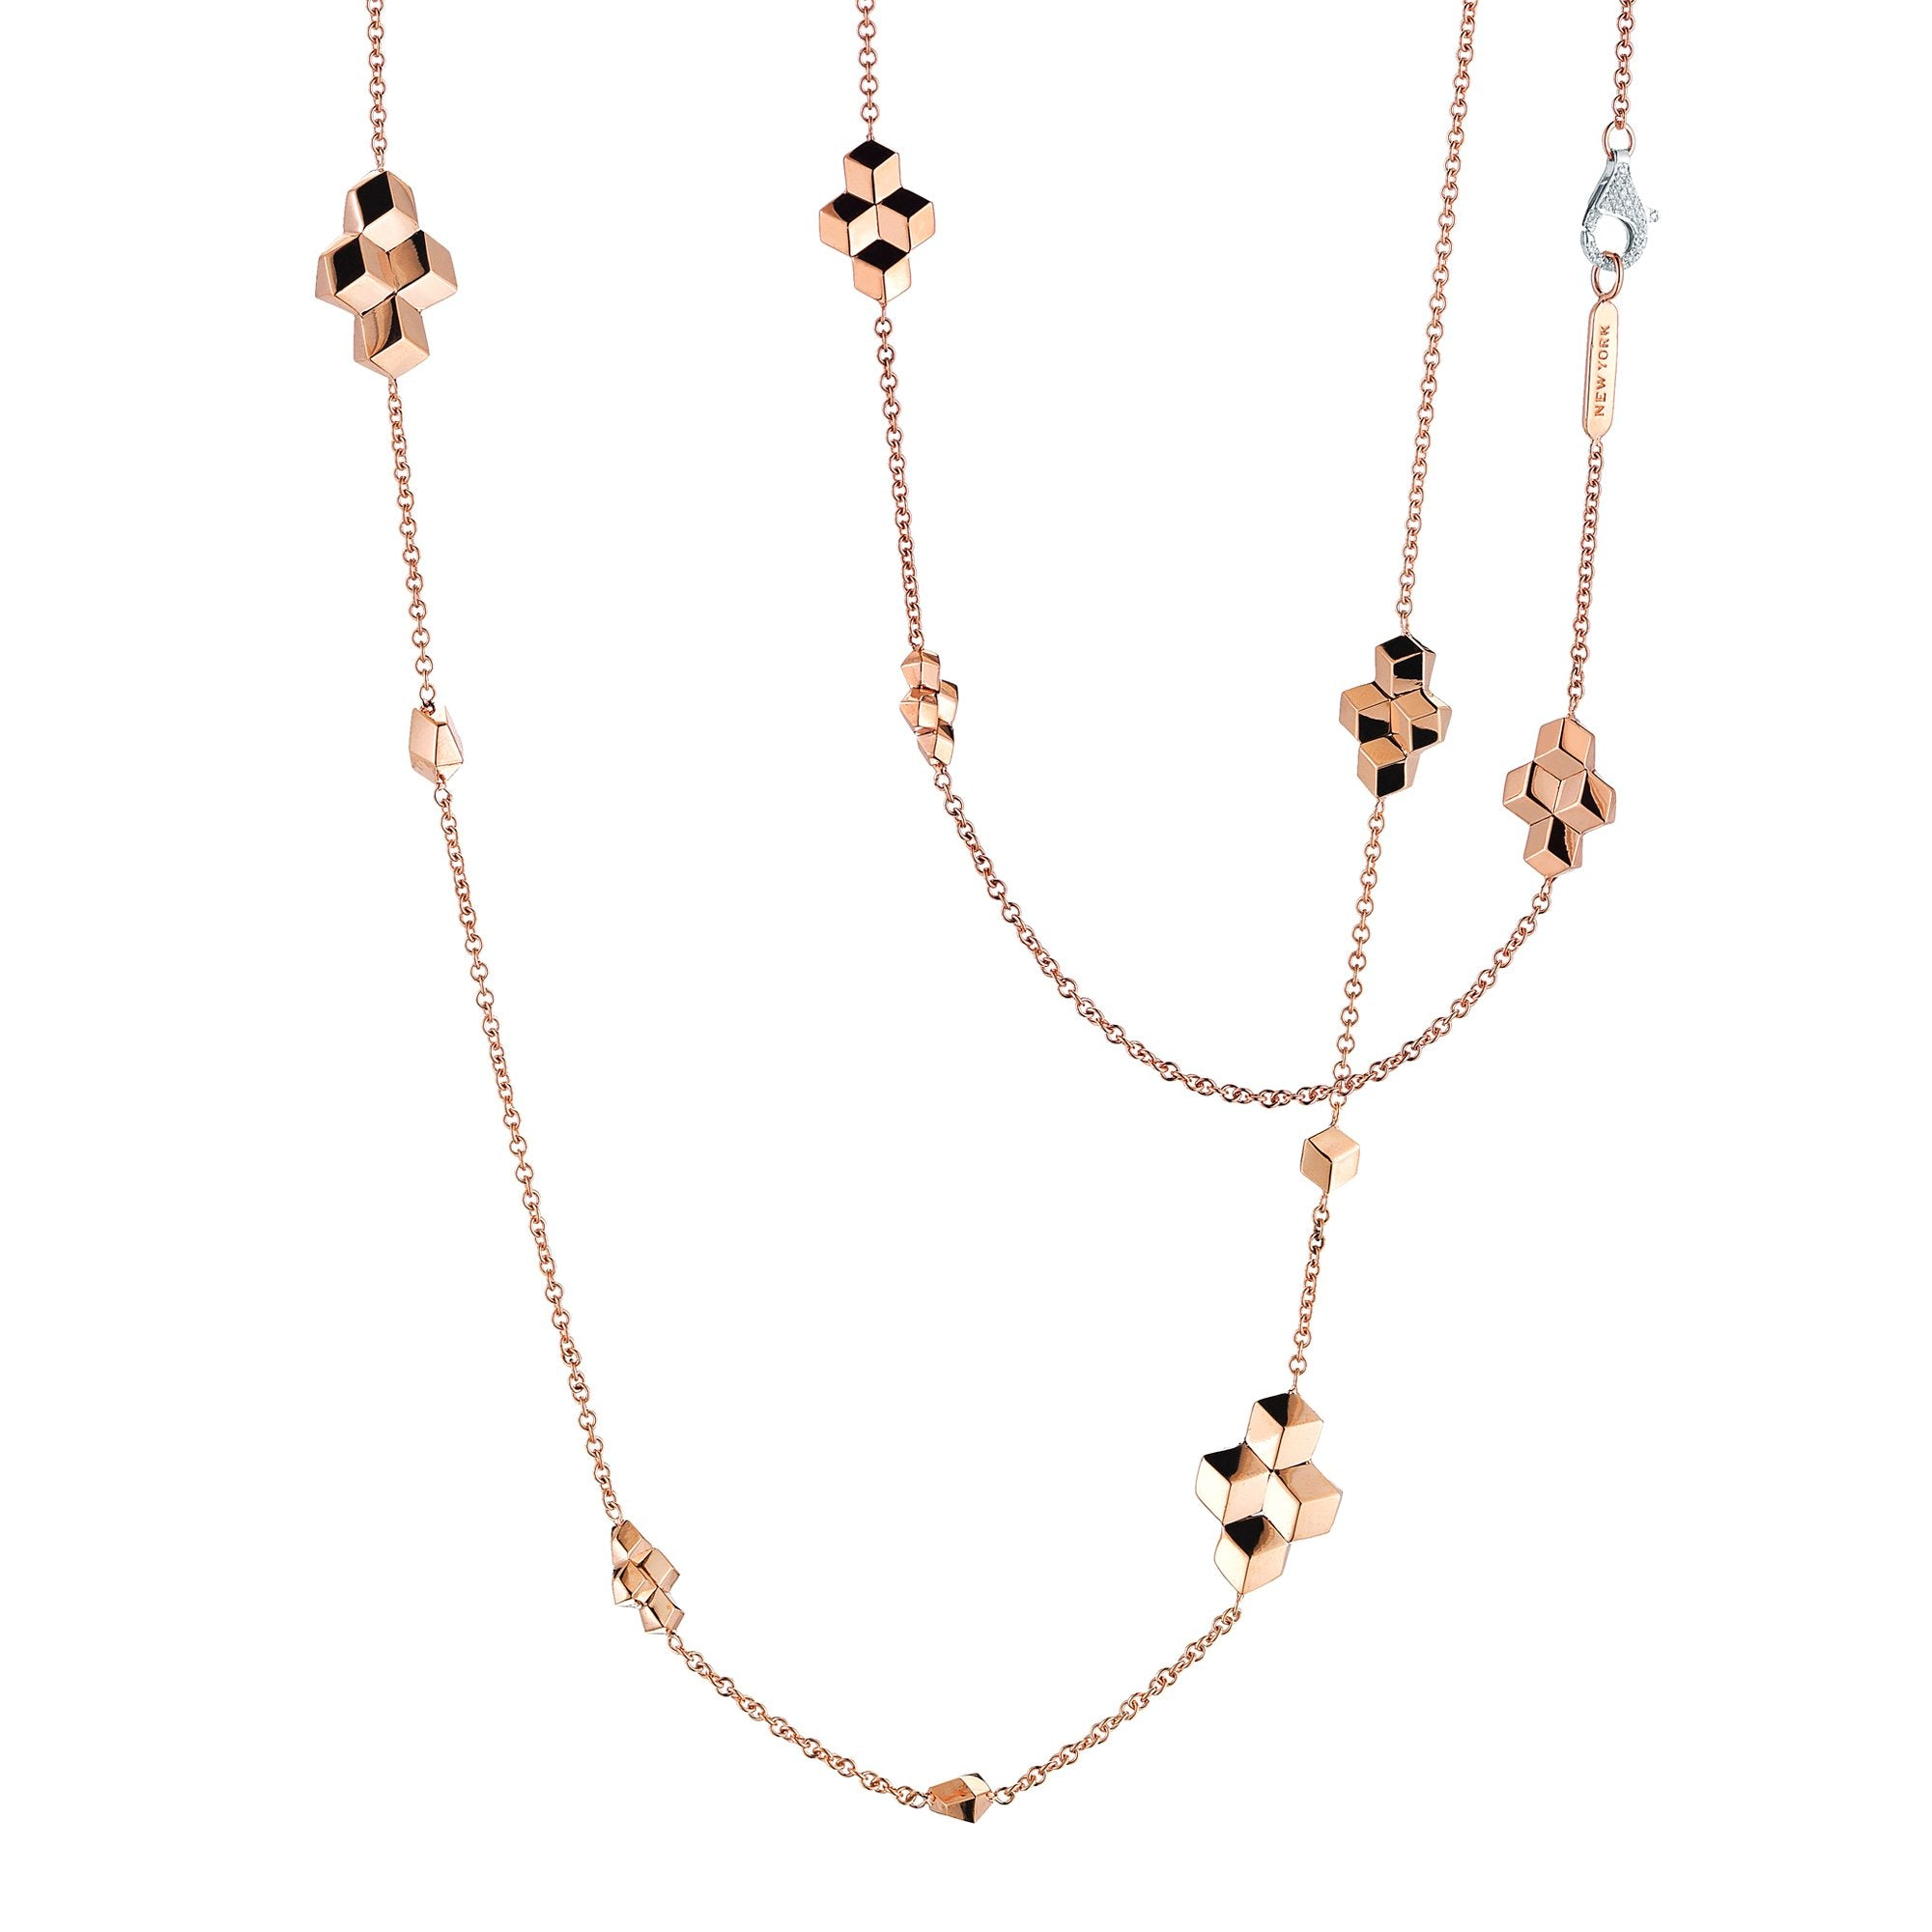 18kt rose gold sautoir necklace